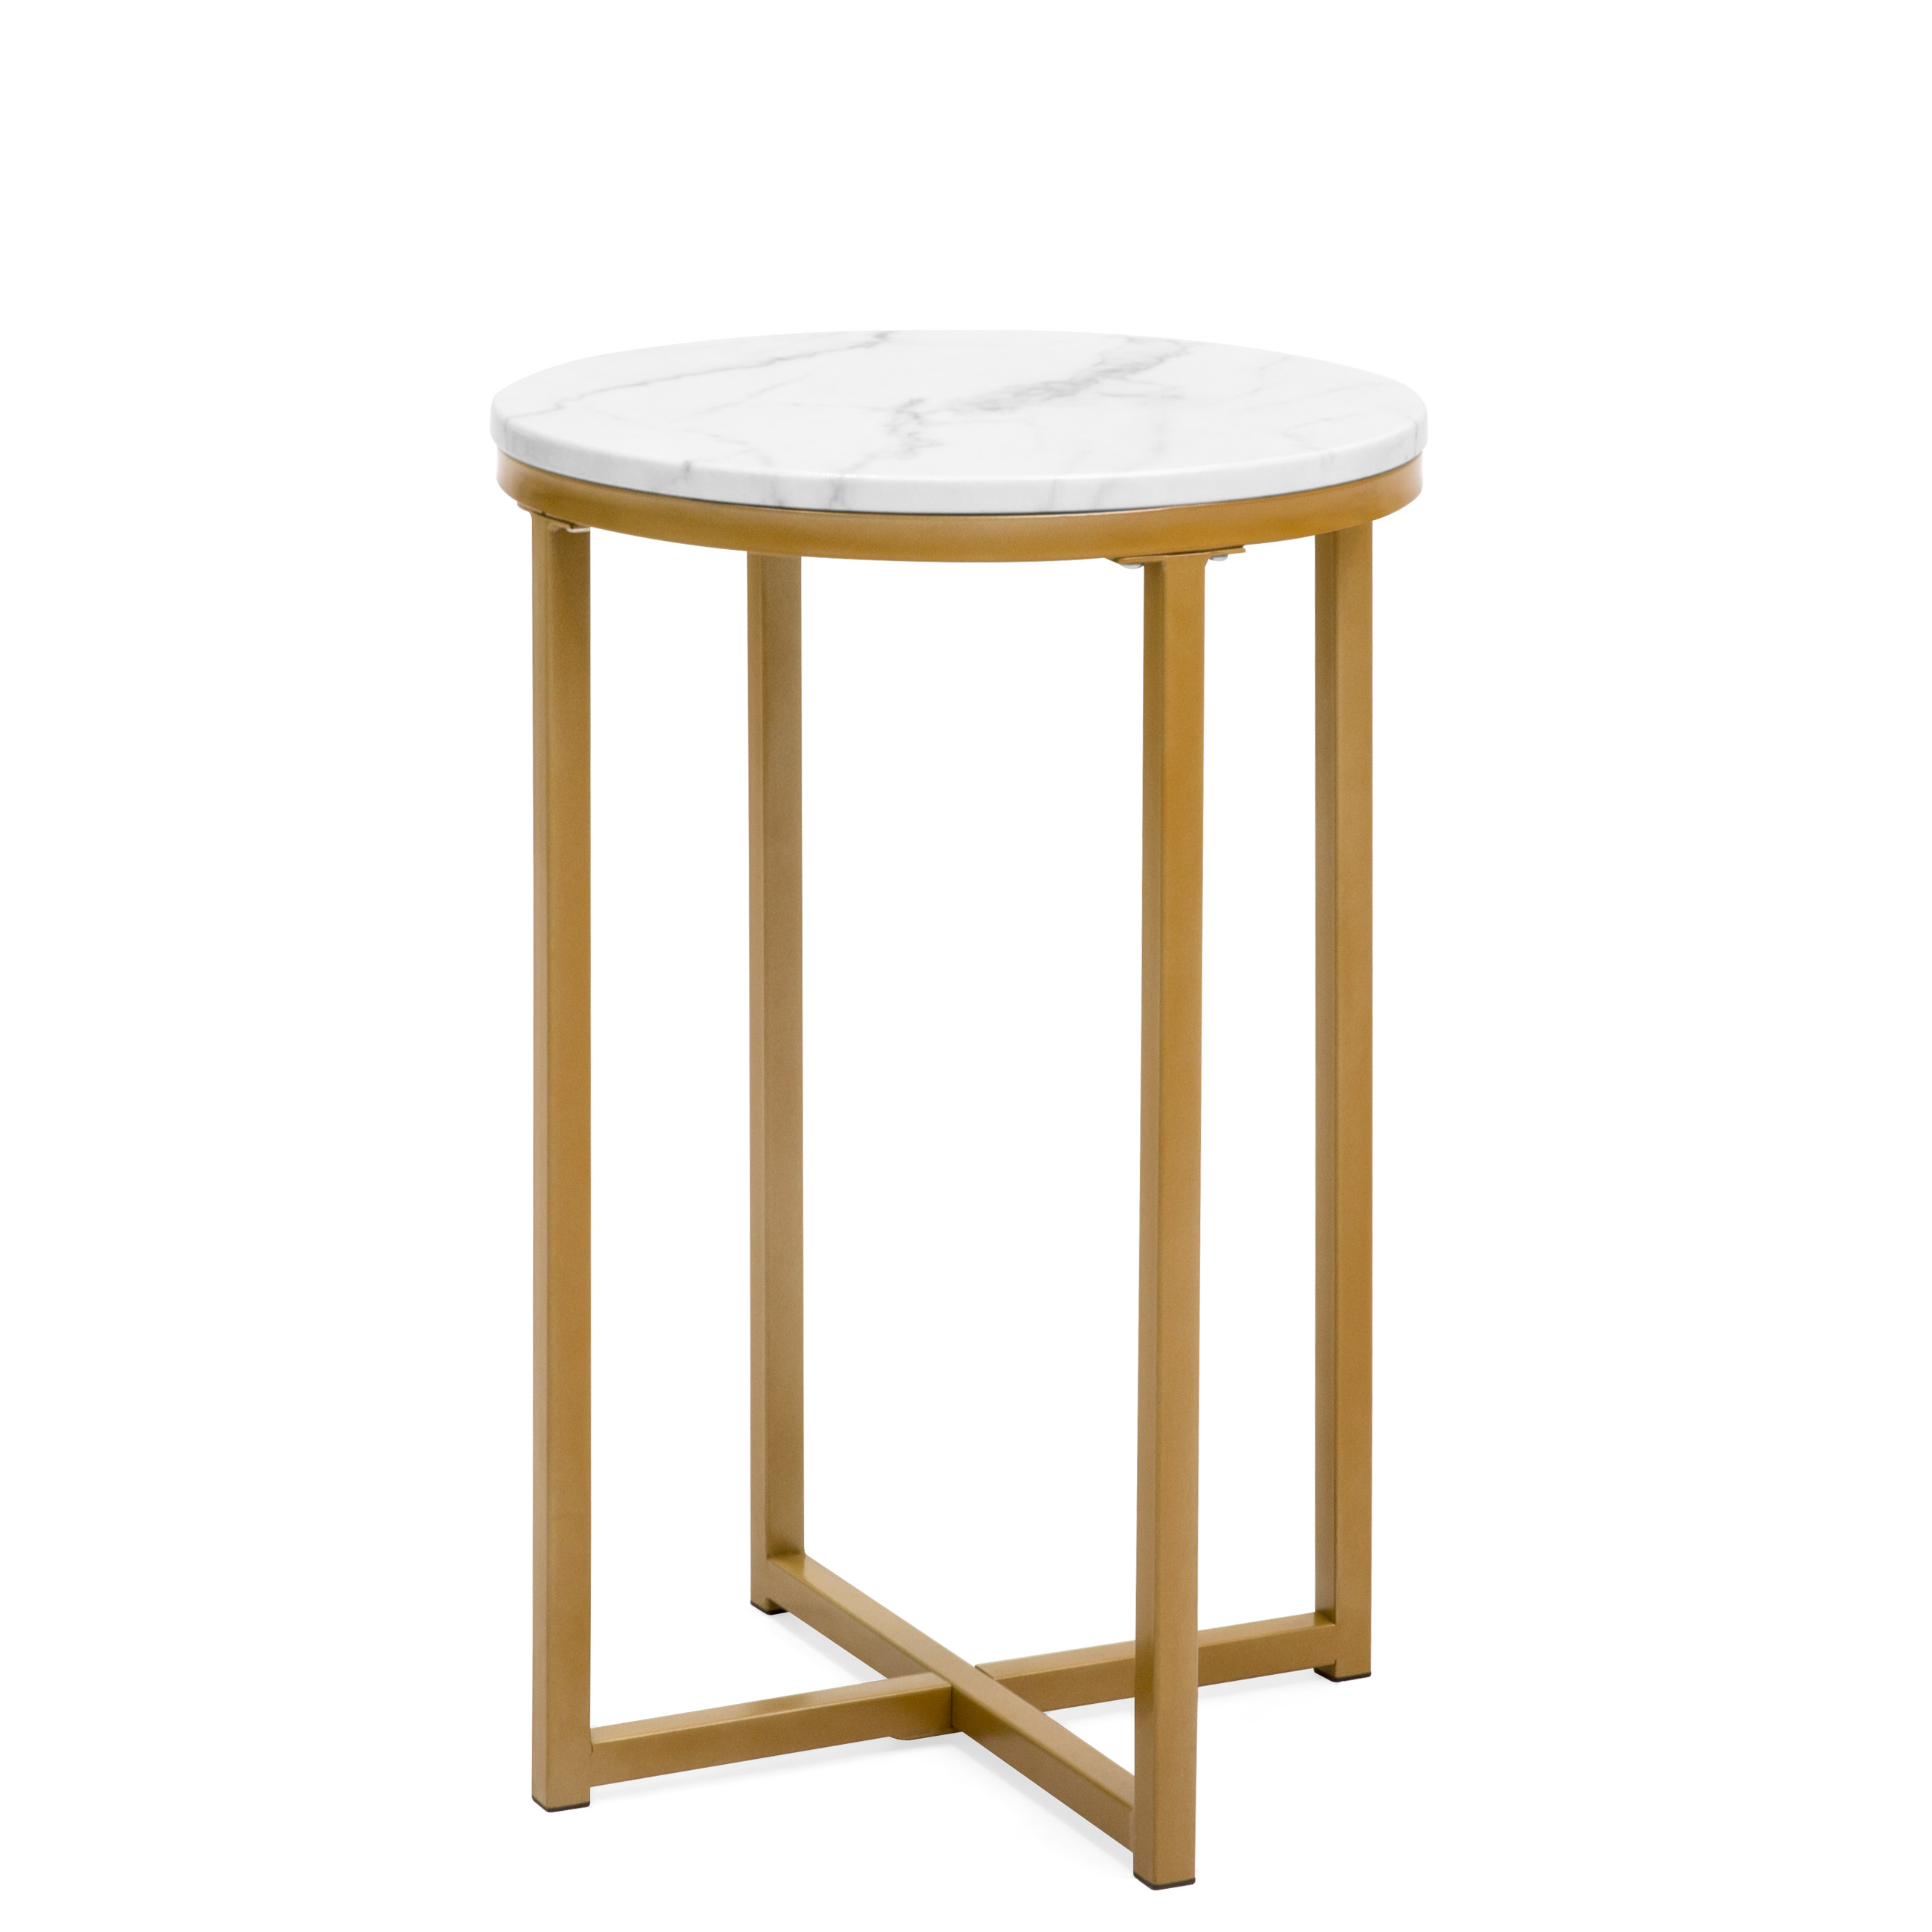 Coffee And Side Tables Best Choice Products 16in Modern Living Room Round Side End Accent Coffee Table Nightstand W Metal Frame Faux Marble Top White Gold